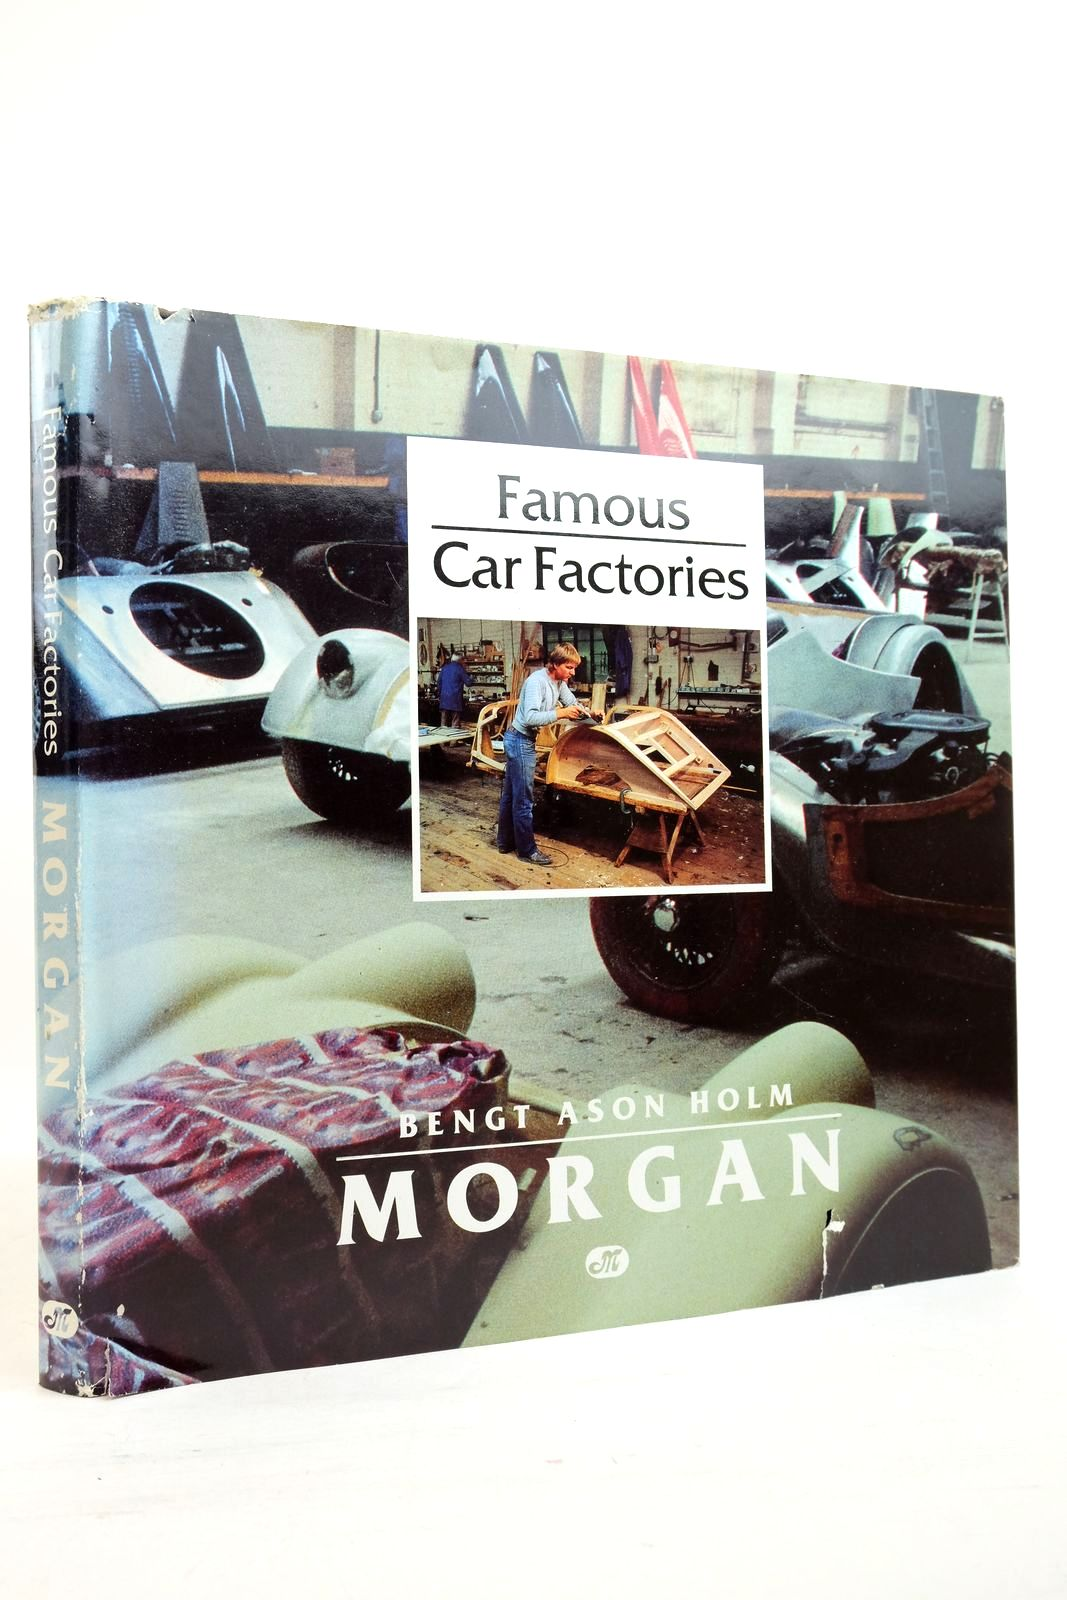 Photo of FAMOUS CAR FACTORIES: MORGAN written by Holm, Bengt Ason published by Motorbooks International (STOCK CODE: 2134863)  for sale by Stella & Rose's Books